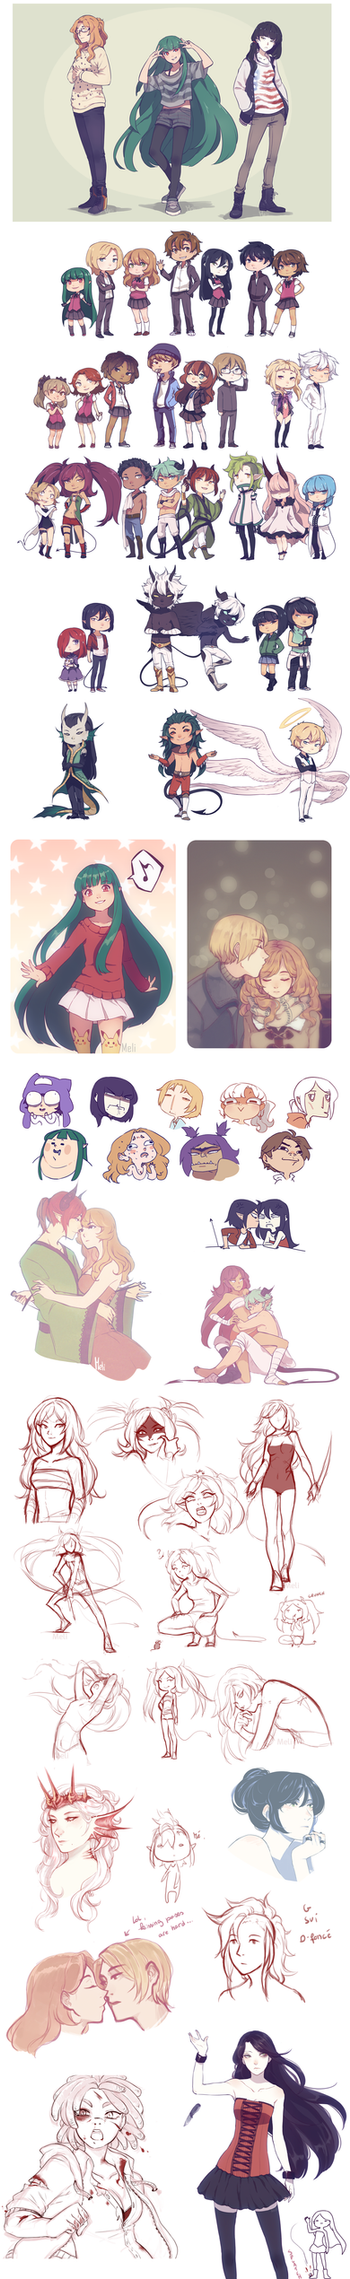 Sketchdump15 by Meli-Lusion